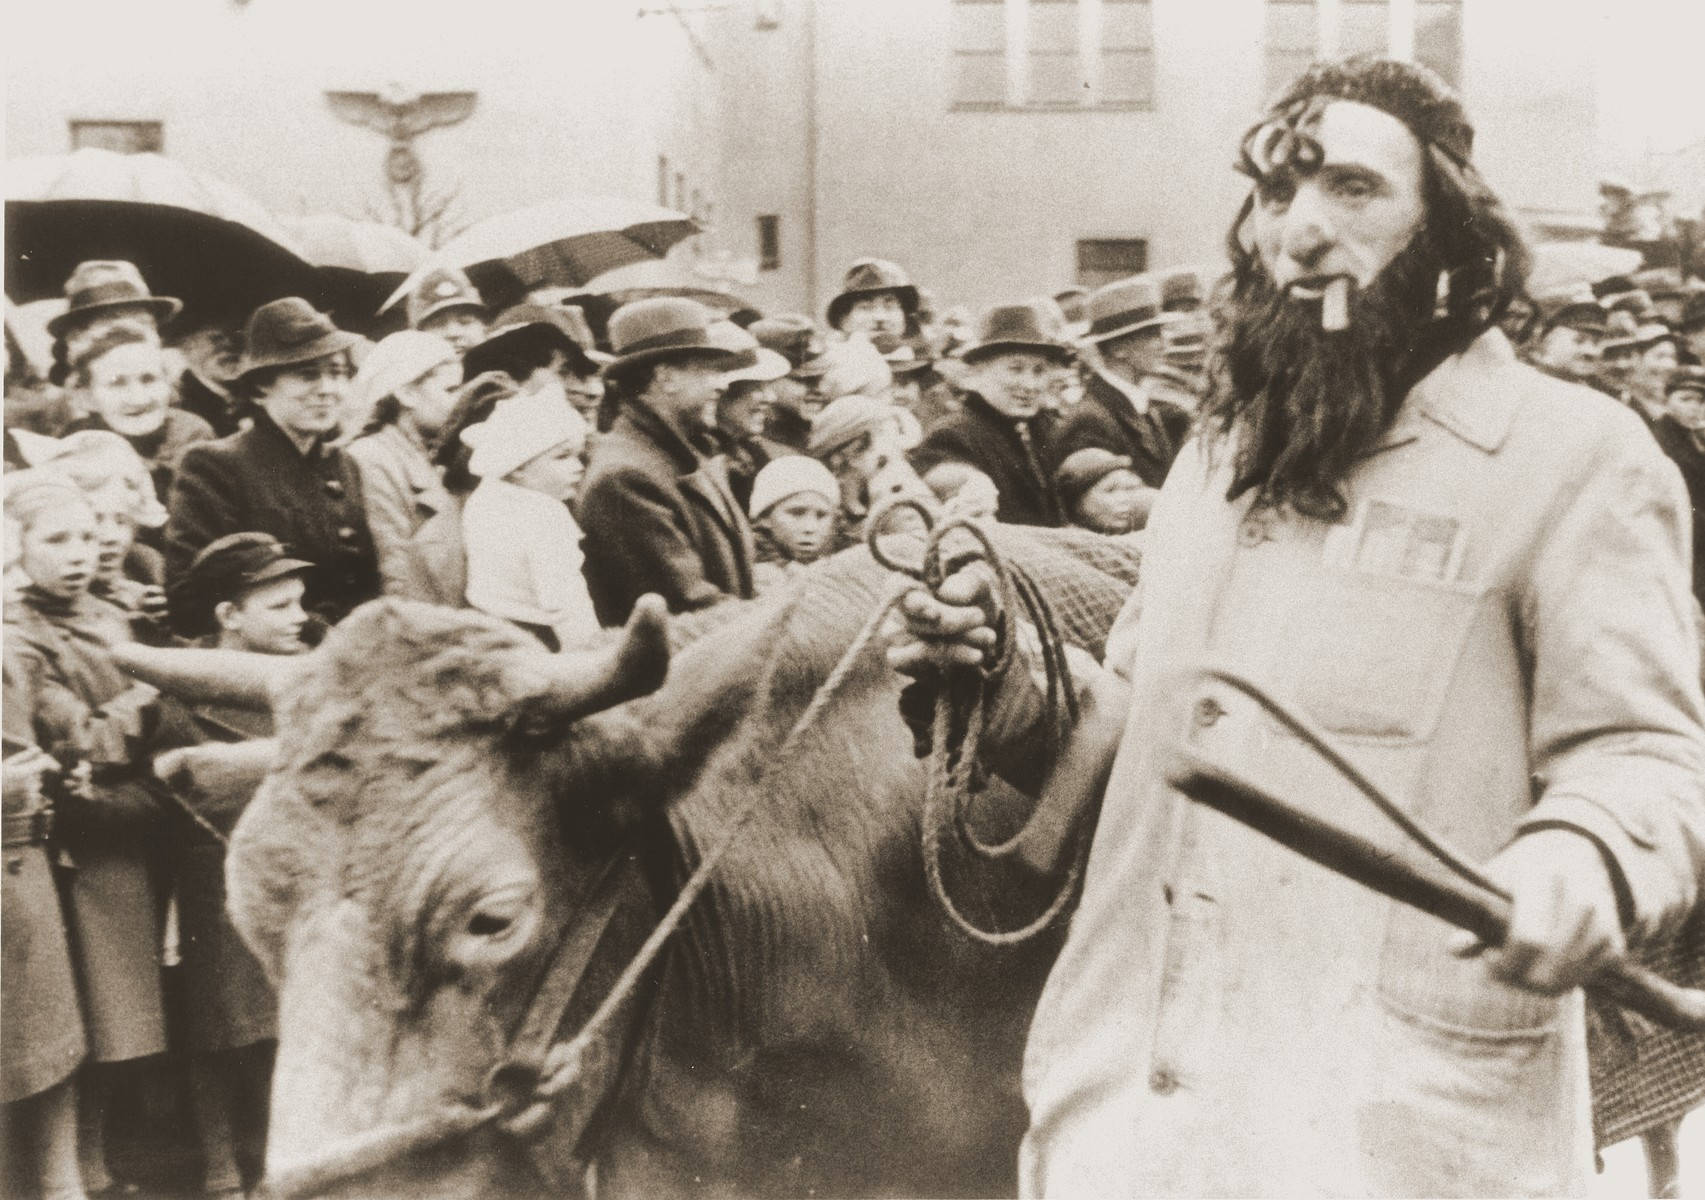 A troupe of actors in a carnival parade parodies Jewish life in Germany.  One of the actors is dressed up as a Jewish cattle dealer, who carries a wad of money in his coat pocket.